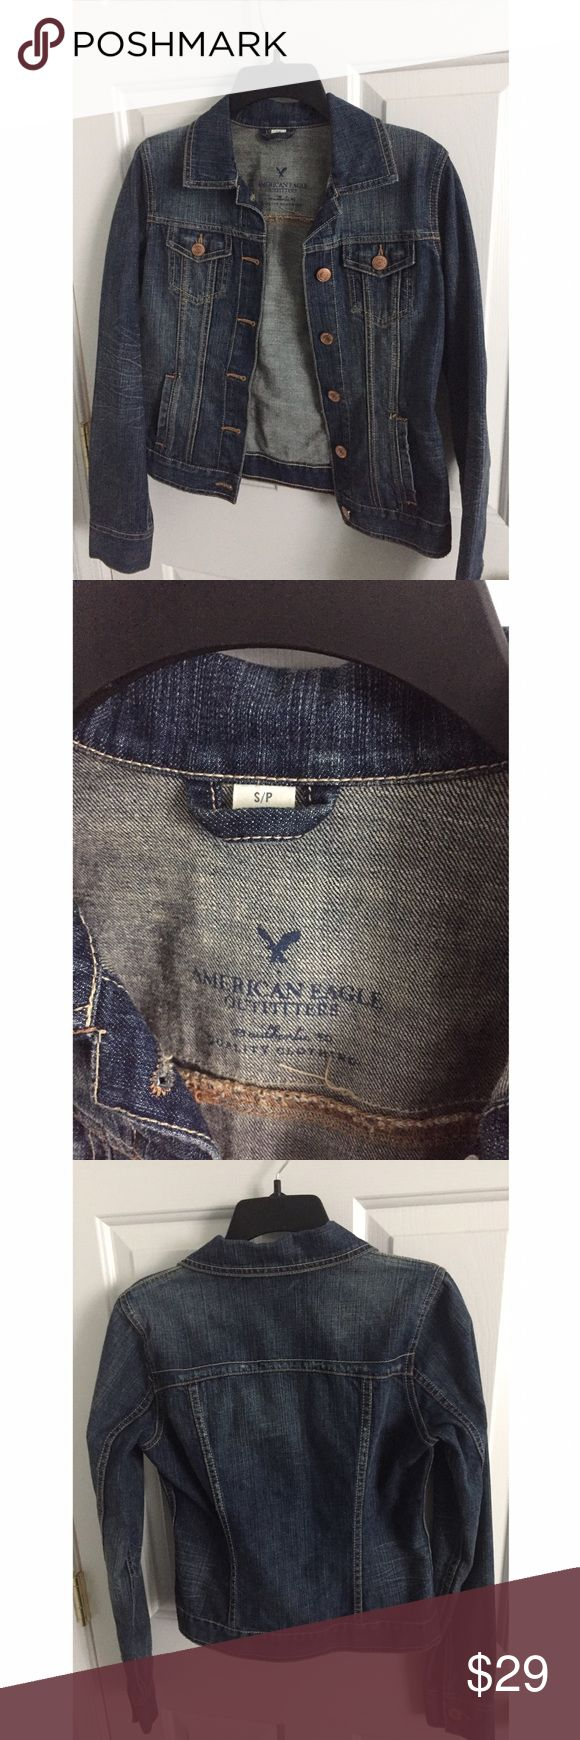 American Eagle Outfitters Jean Denim Jacket Only worn once! Dark denim jacket great for spring American Eagle Outfitters Jackets & Coats Jean Jackets